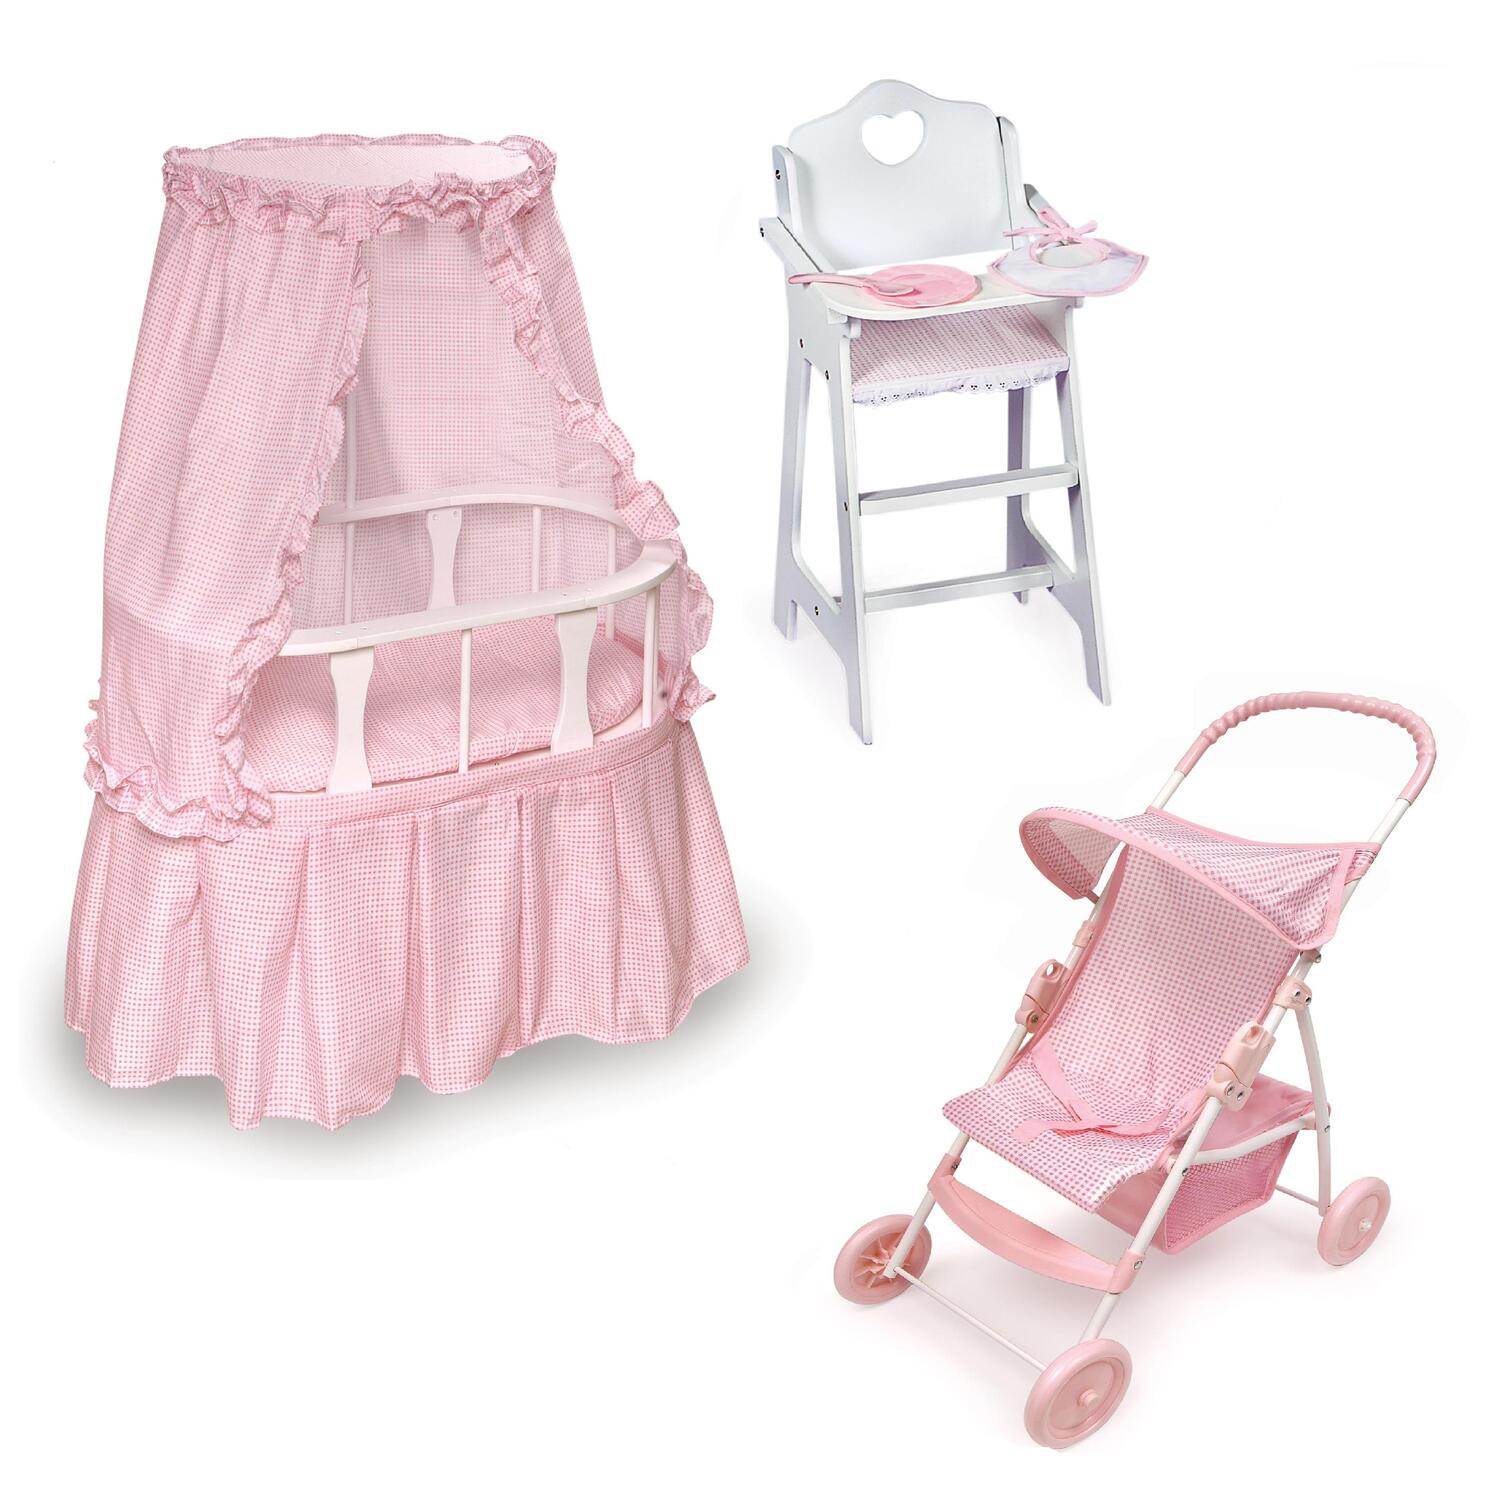 Baby Doll Accessories Sets Book Covers